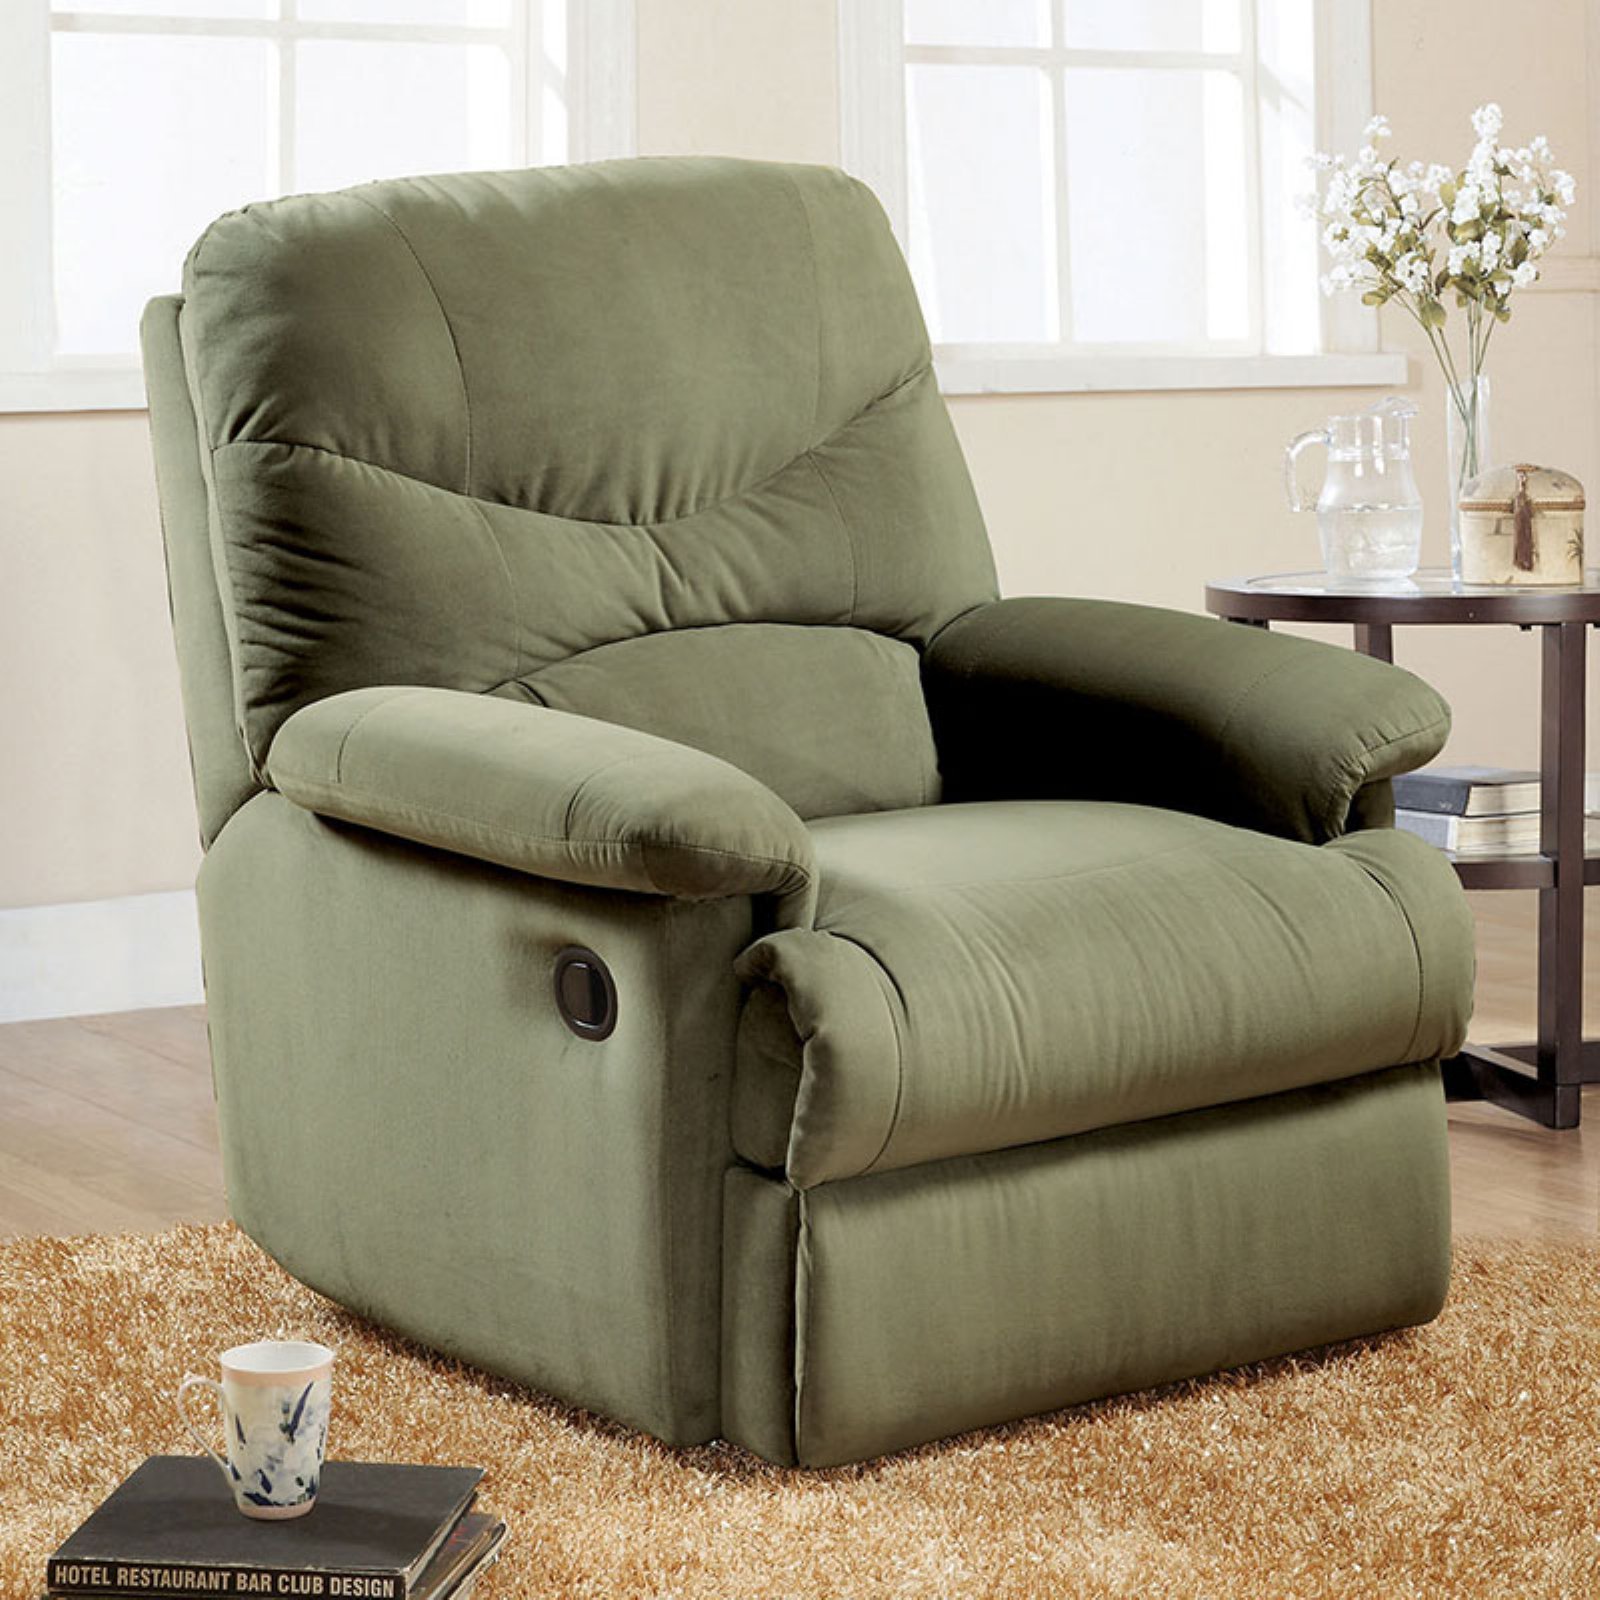 & Oakwood Microfiber Recliner Multiple Colors - Walmart.com islam-shia.org